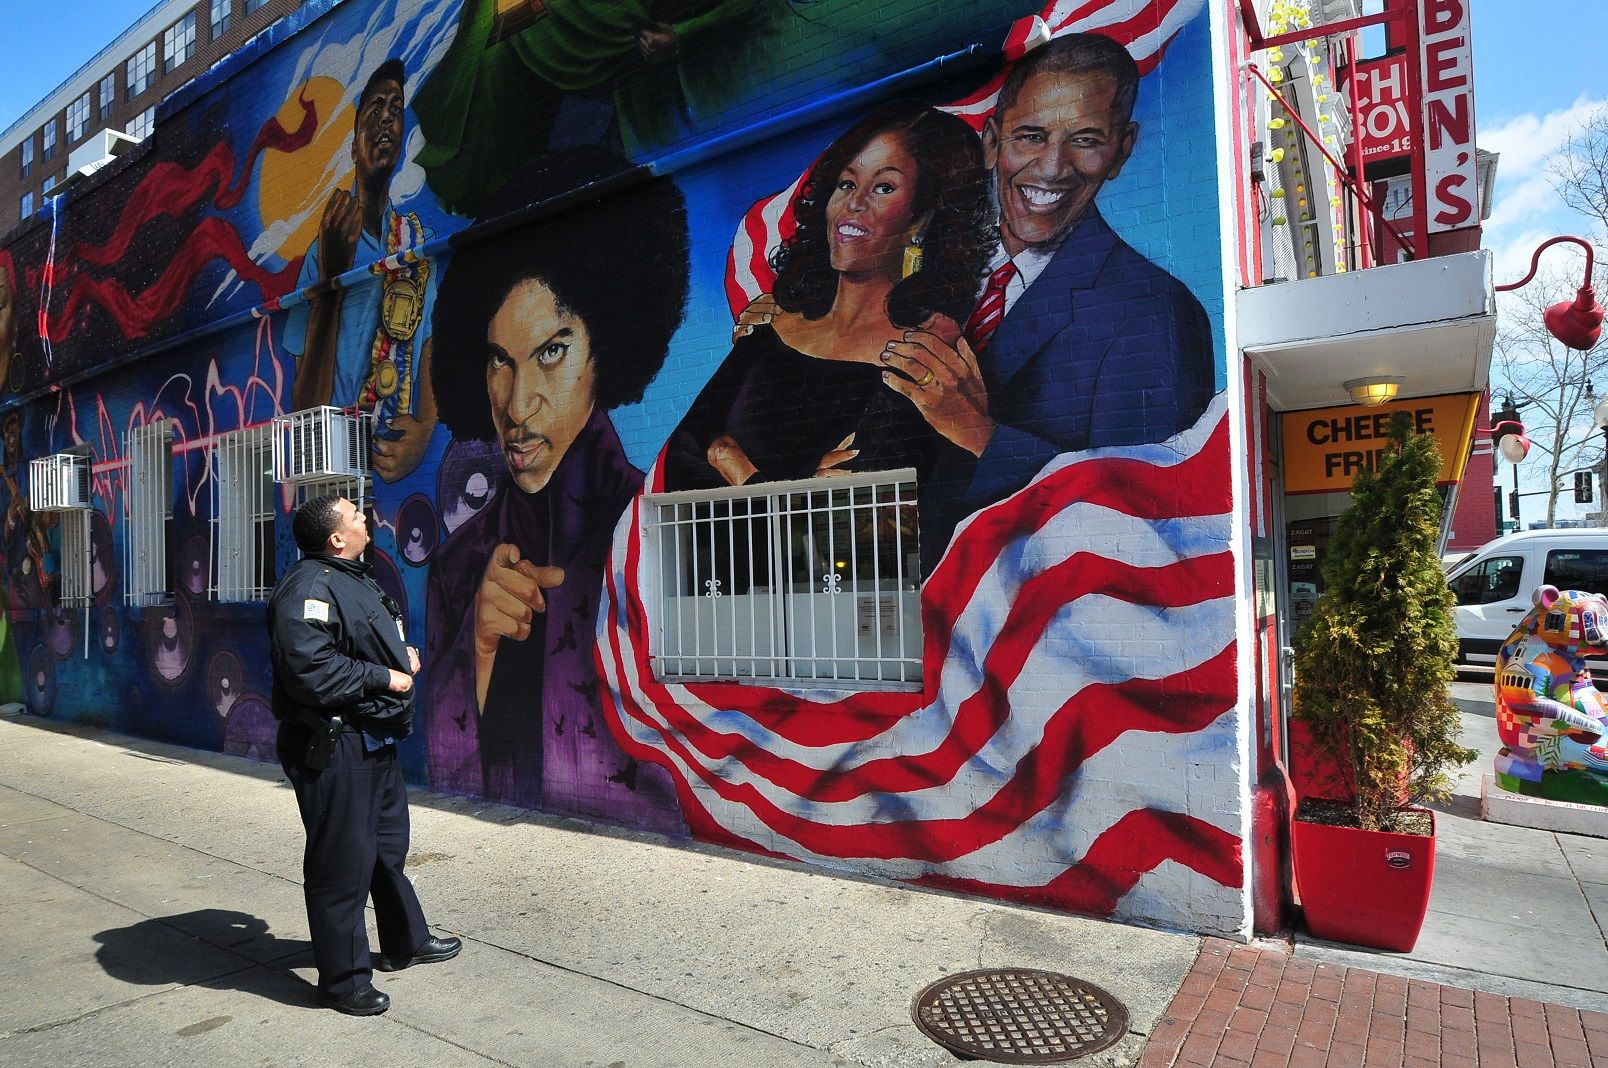 A D.C. Police officer admires the mural outside of Ben's Chili Bowl during a training tour of the U Street corridor. (Courtesy DC Police)